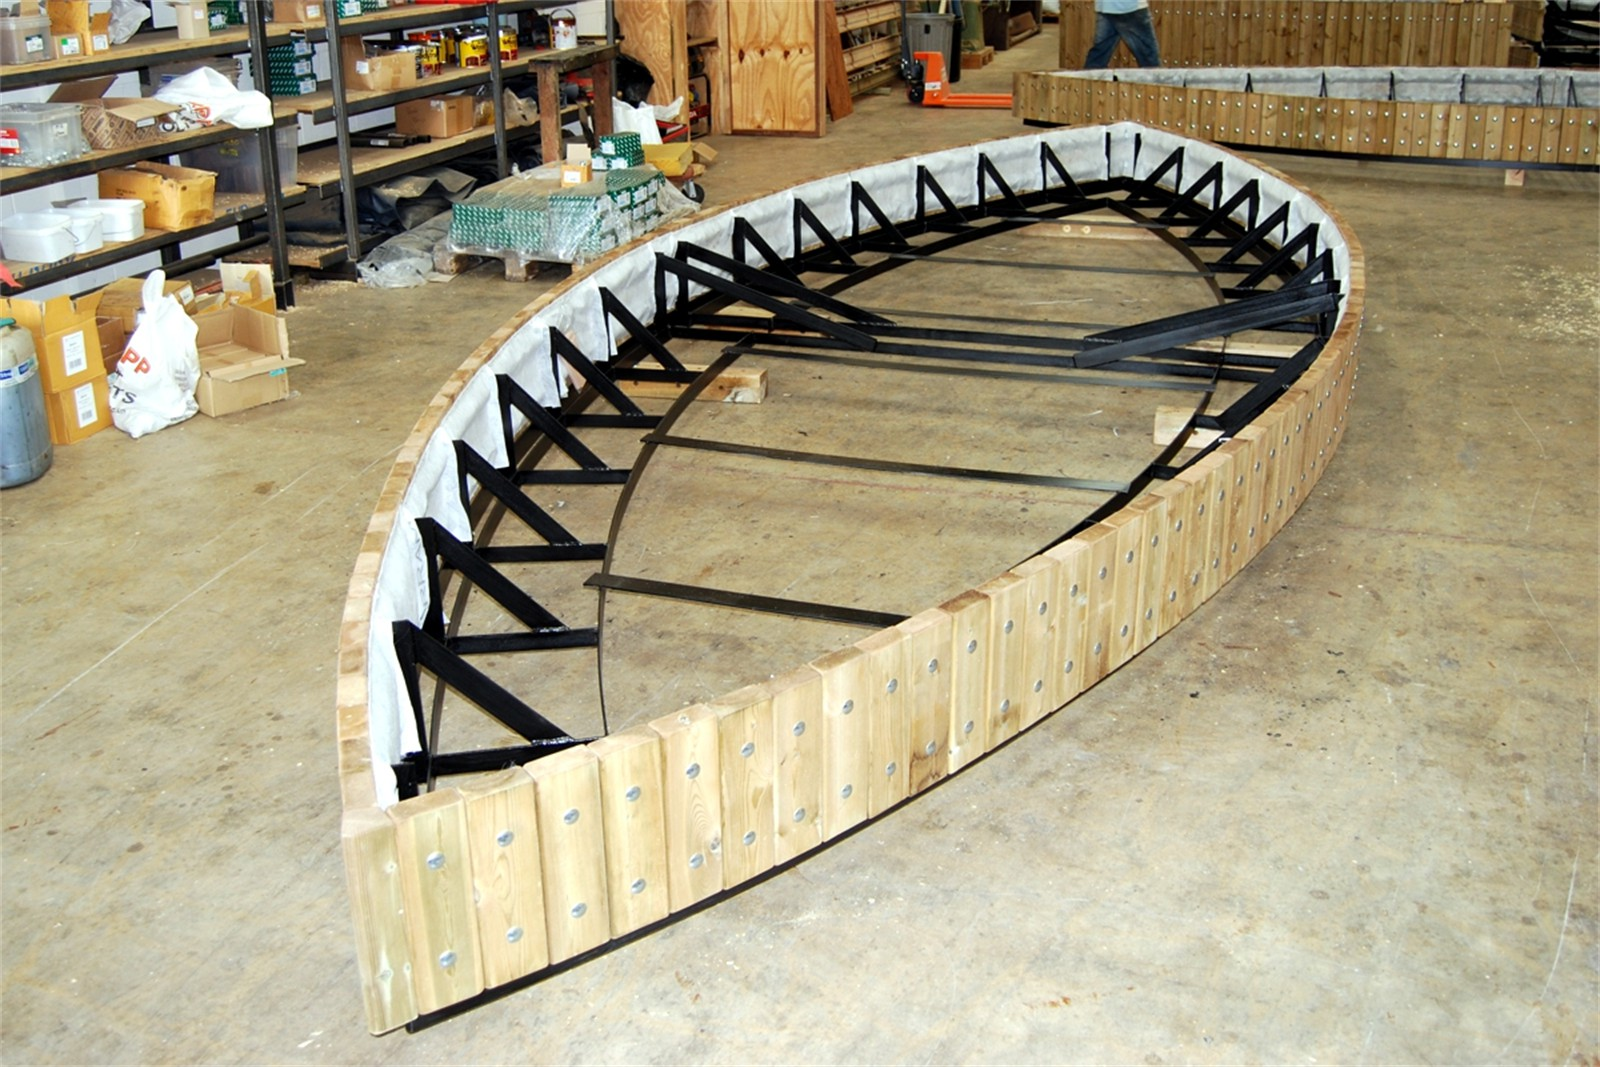 21psw01 - Swithland planter walling in manufacture